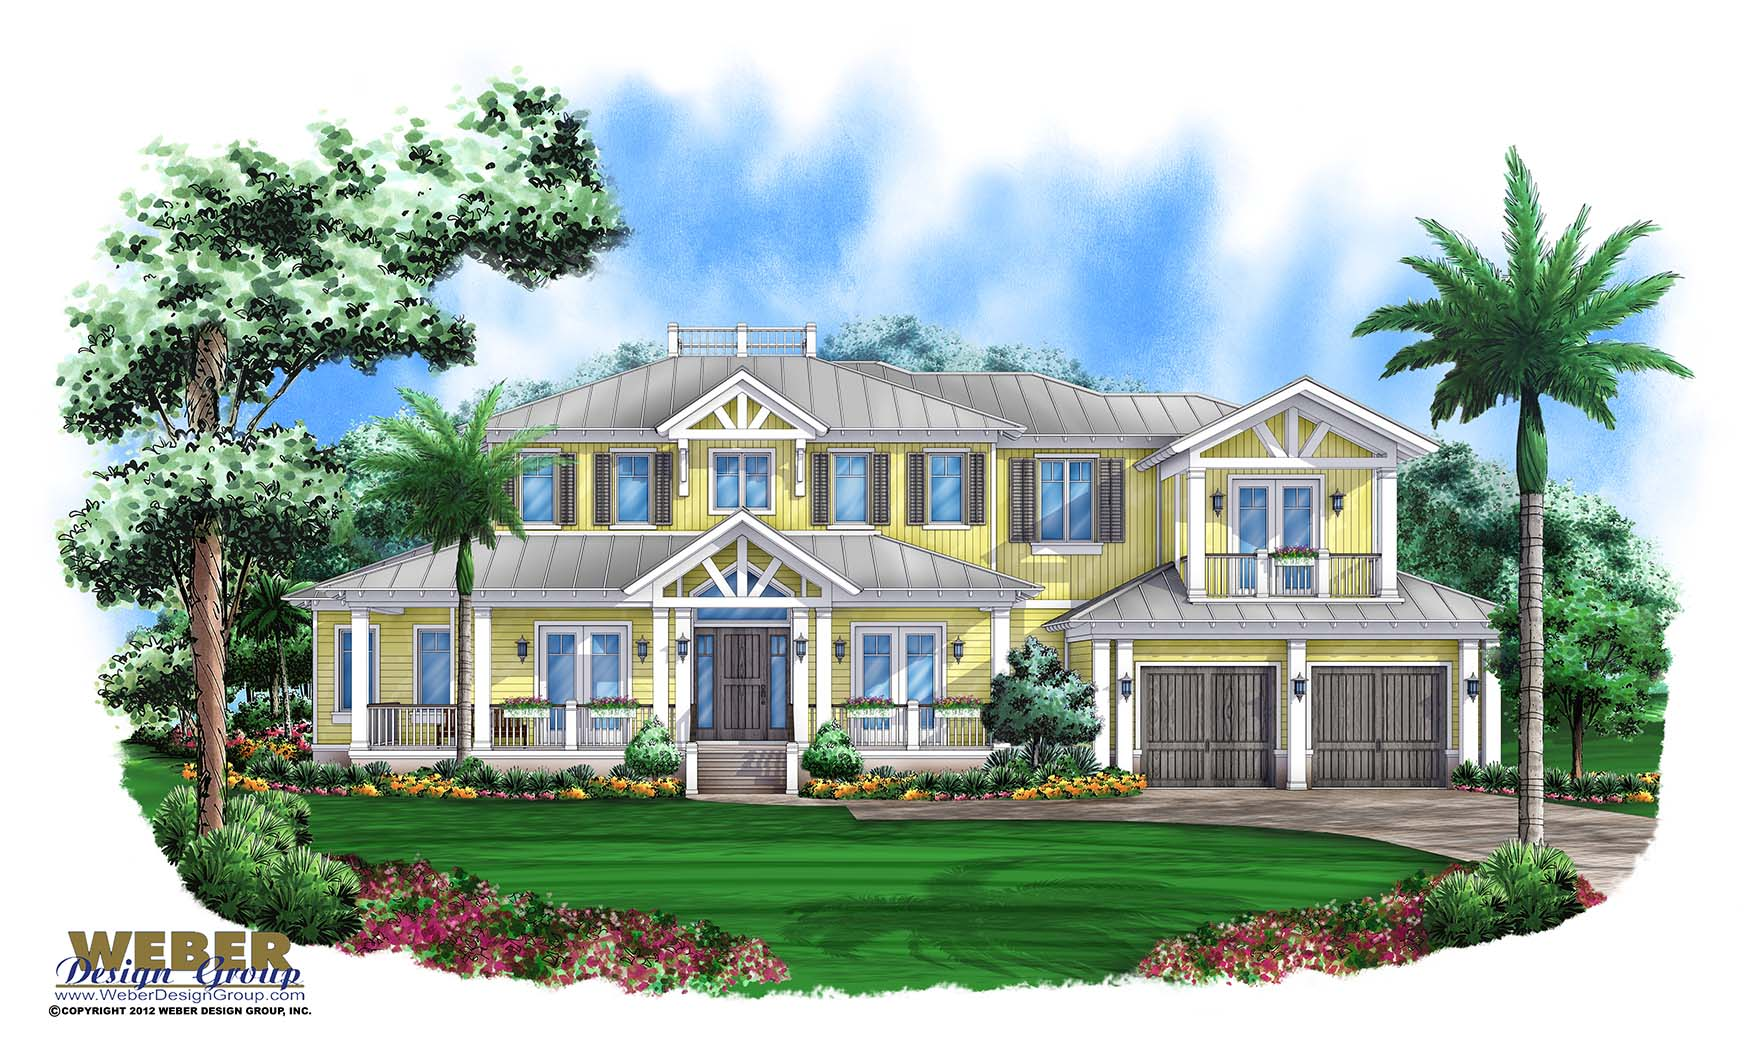 Key west house plans key west island style home floor plans for House plans for florida homes